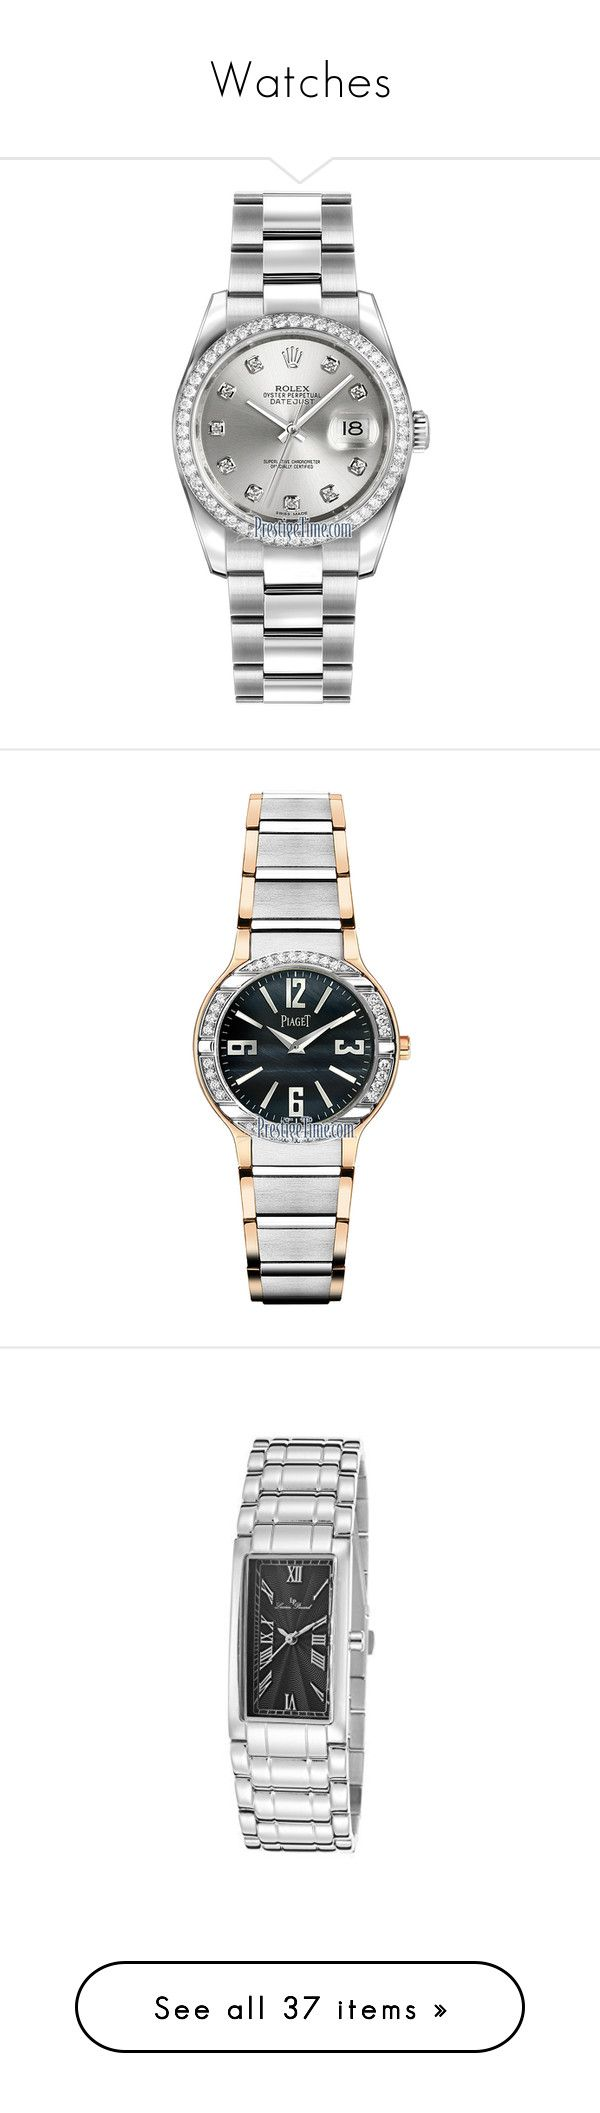 """""""Watches"""" by miriam83 ❤ liked on Polyvore featuring jewelry, watches, stainless steel, silver watches, silver jewellery, polish jewelry, silver wrist watch, rolex, quartz jewelry and piaget"""